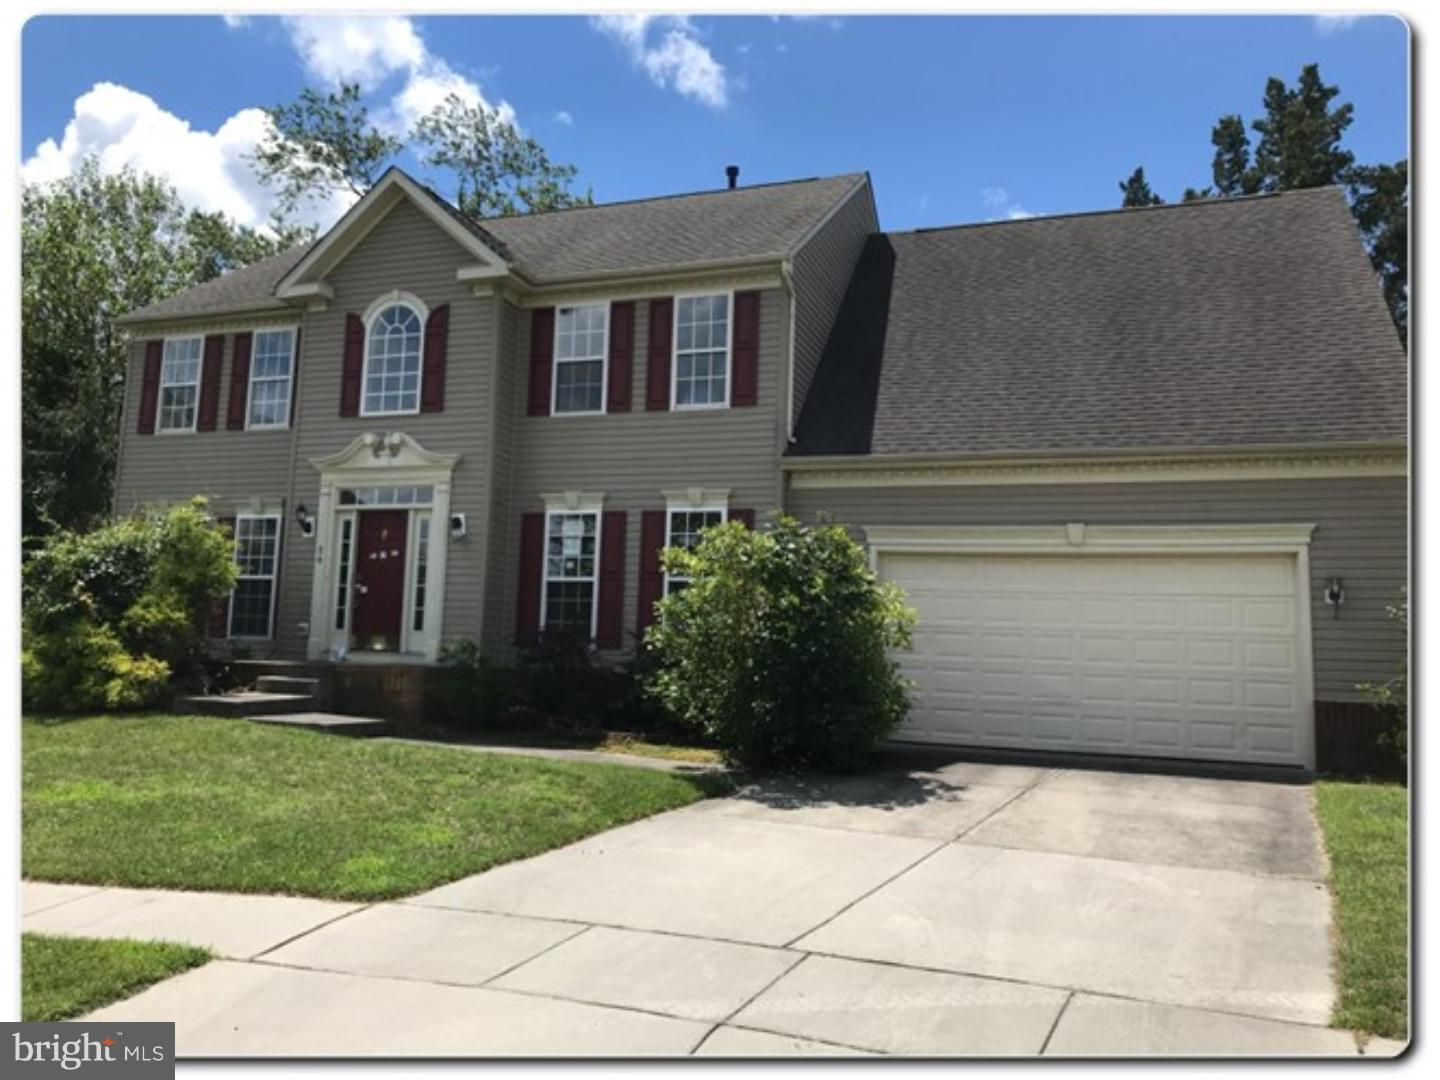 Single Family Home for Sale at 26 JACK SLOAN Court Northfield, New Jersey 08225 United States